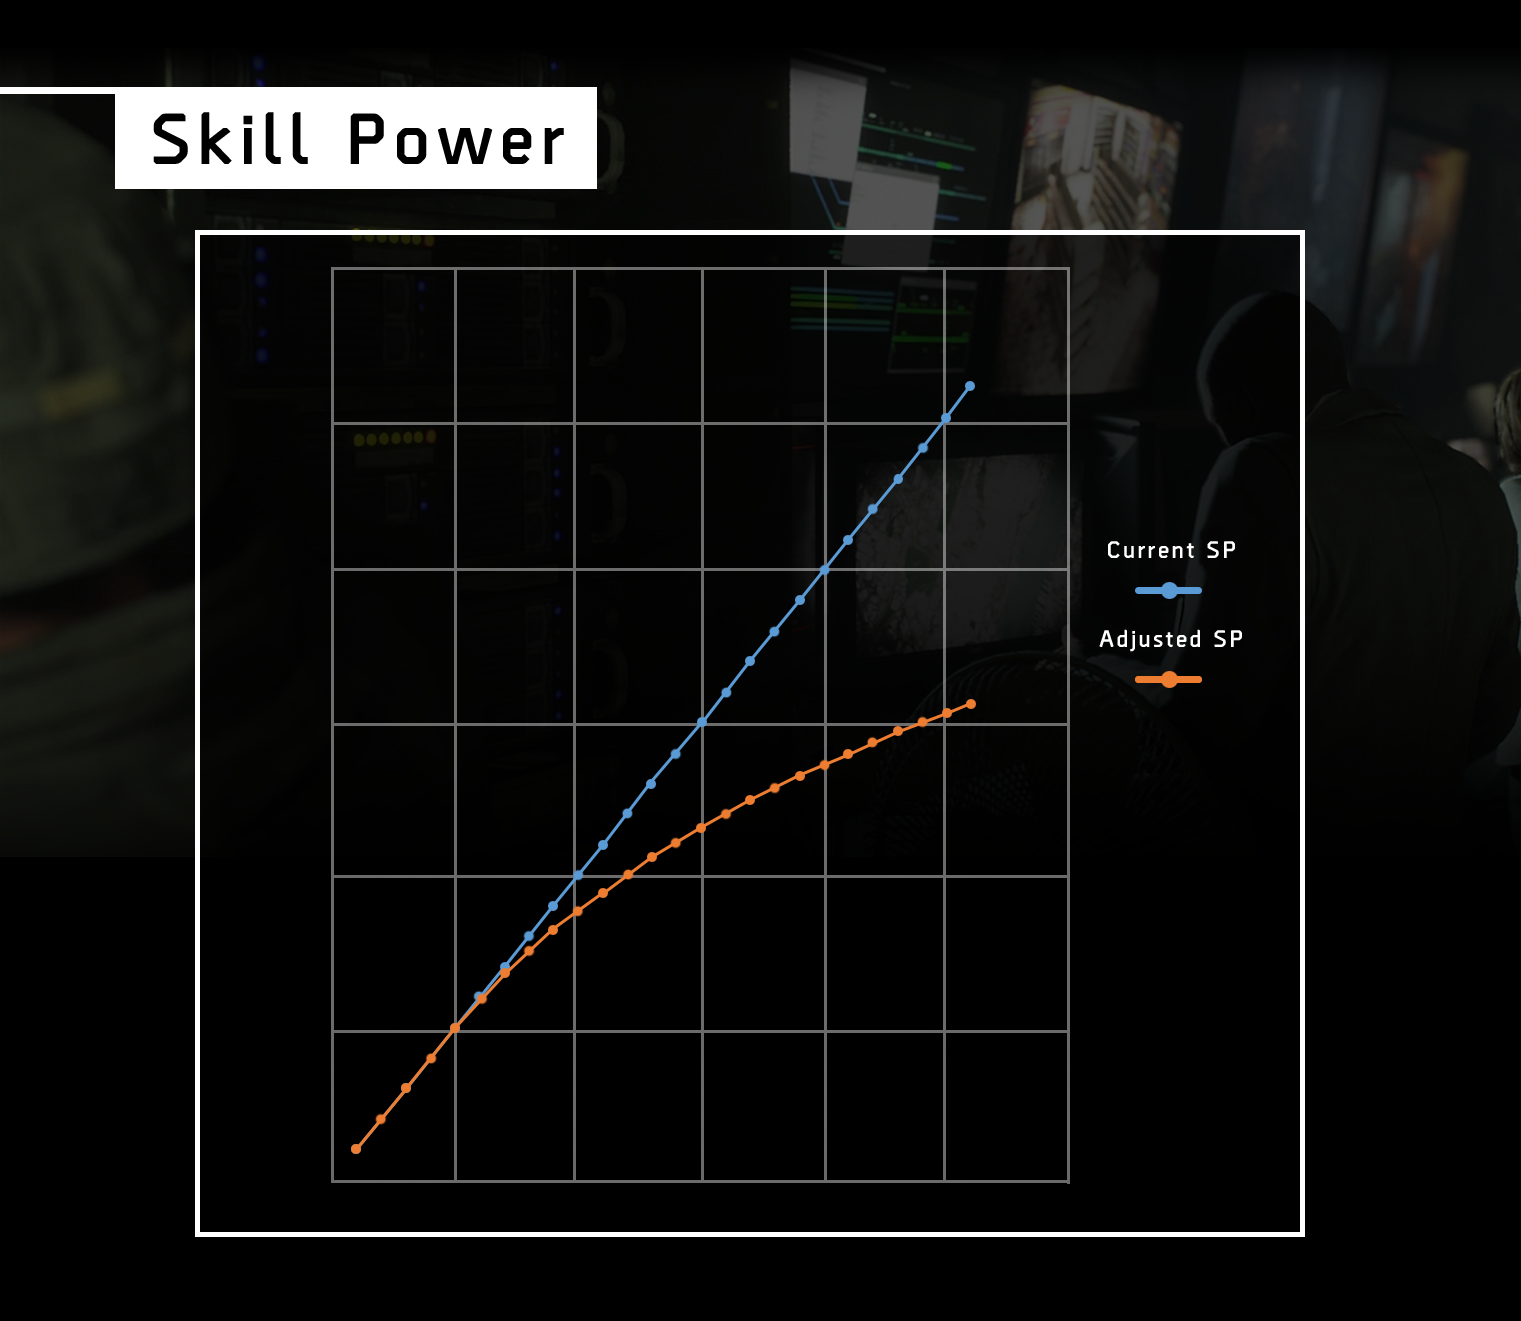 SkillPower_268310.png